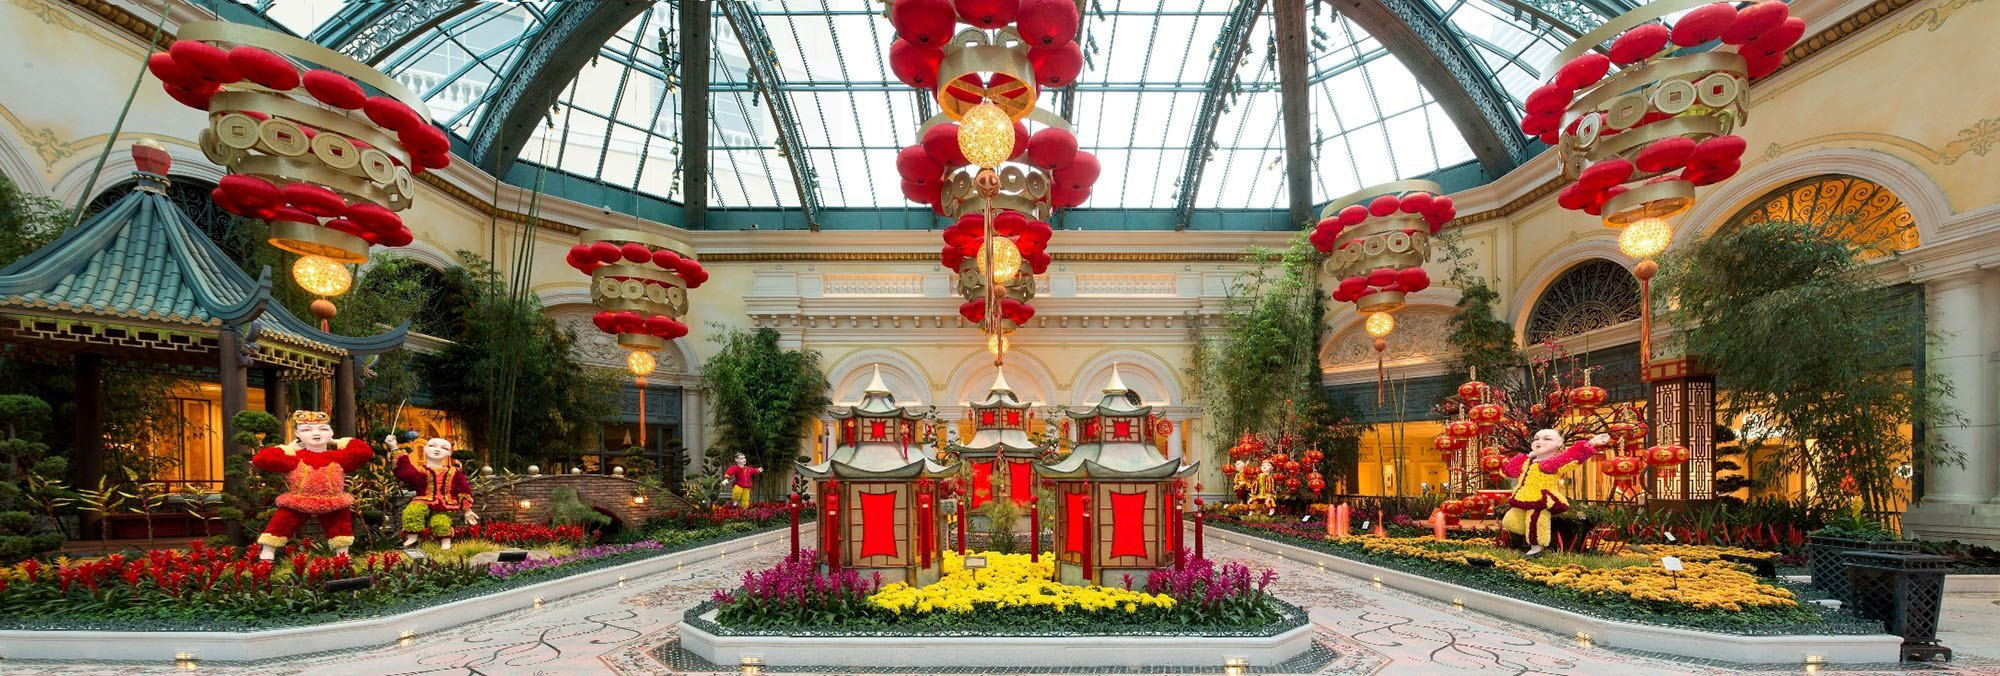 Bellagio 39 S Botanical Gardens Highlights A Picturesque Display Honoring Chinese New Year